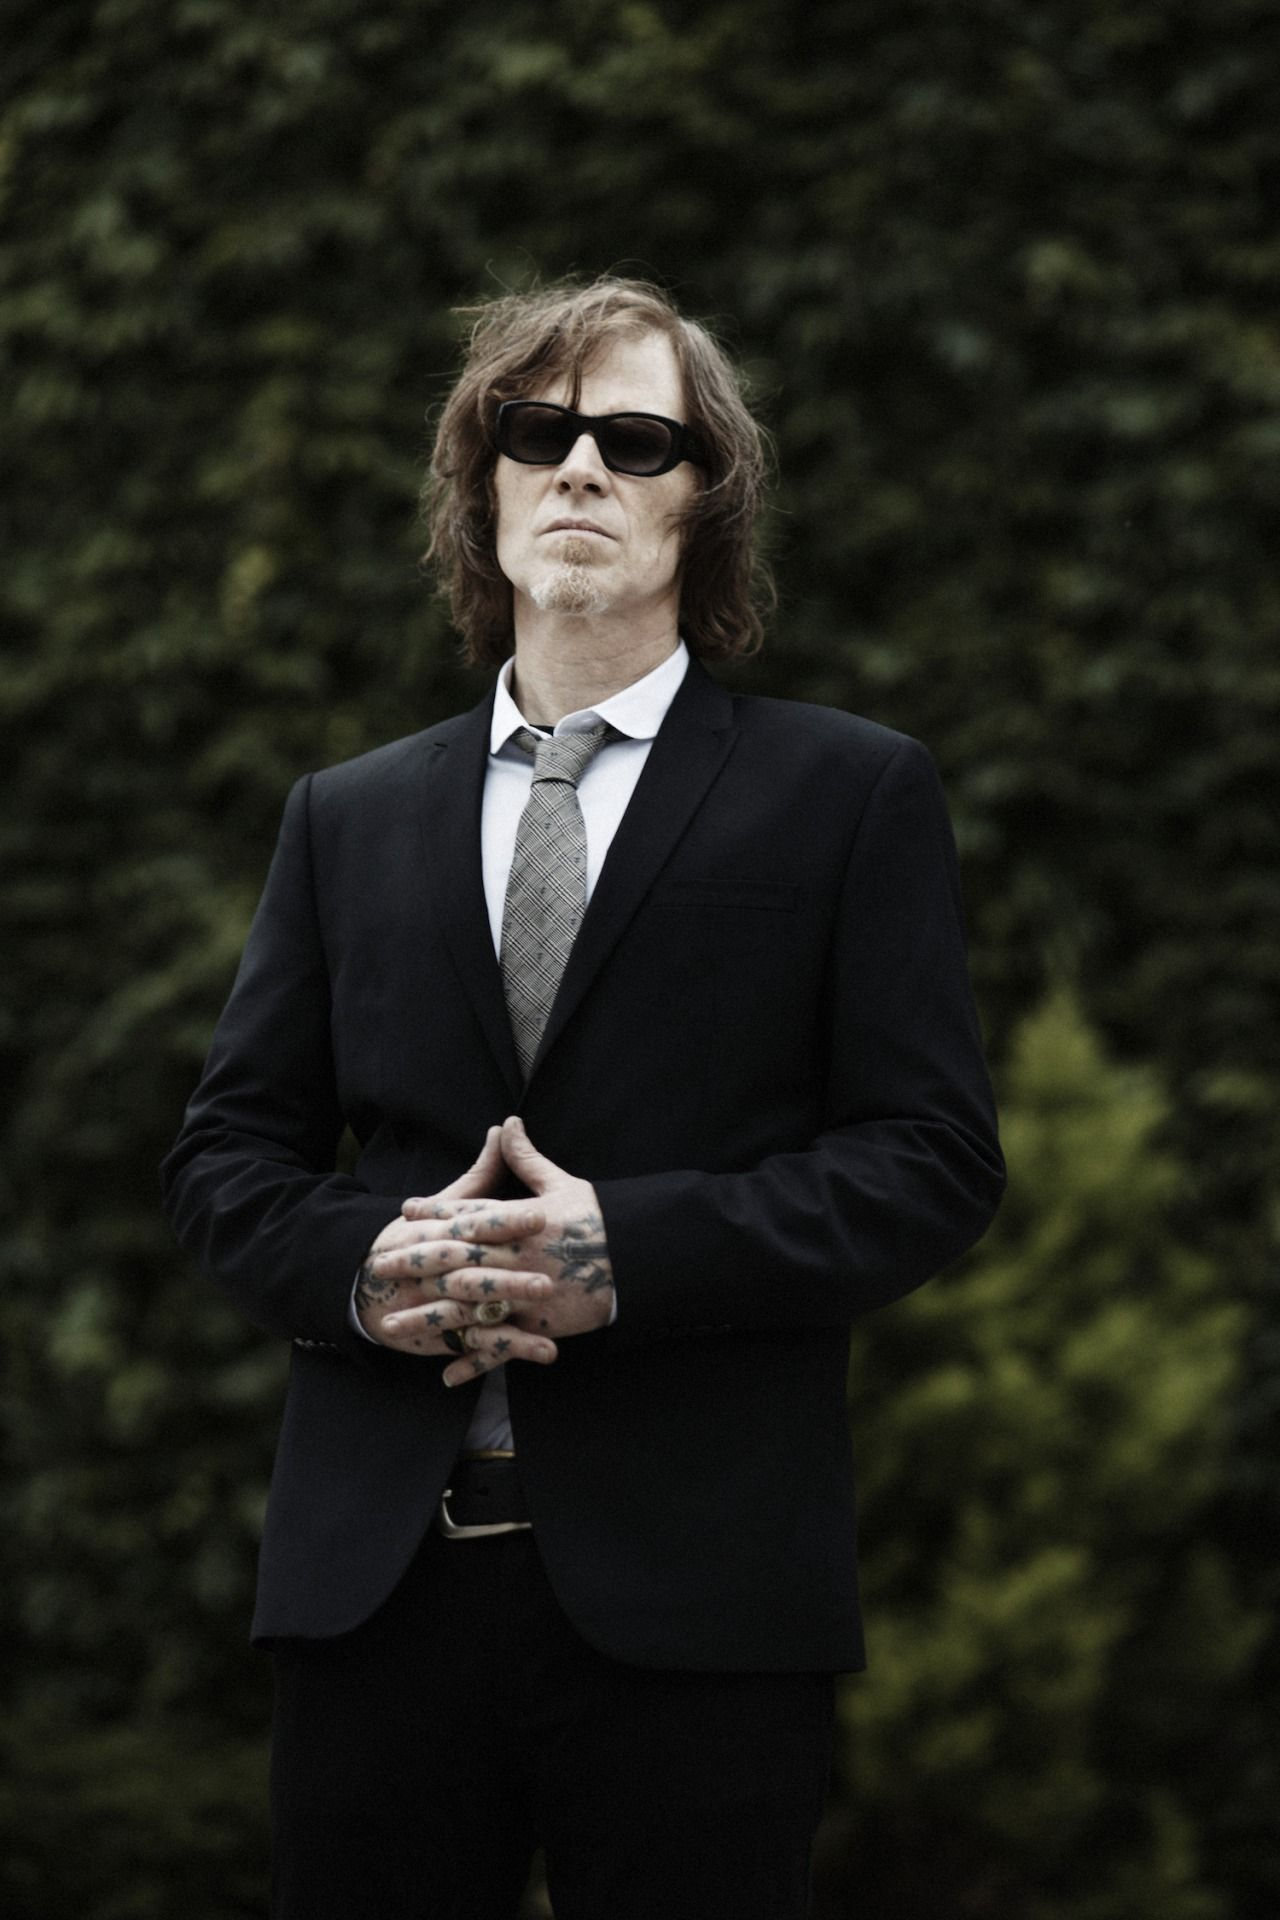 Heavenlyrecordings Mark Lanegan Band European Tour Dates Announced Including Eight Uk Shows Read More Here Mark Lanegan Female Musicians Marks